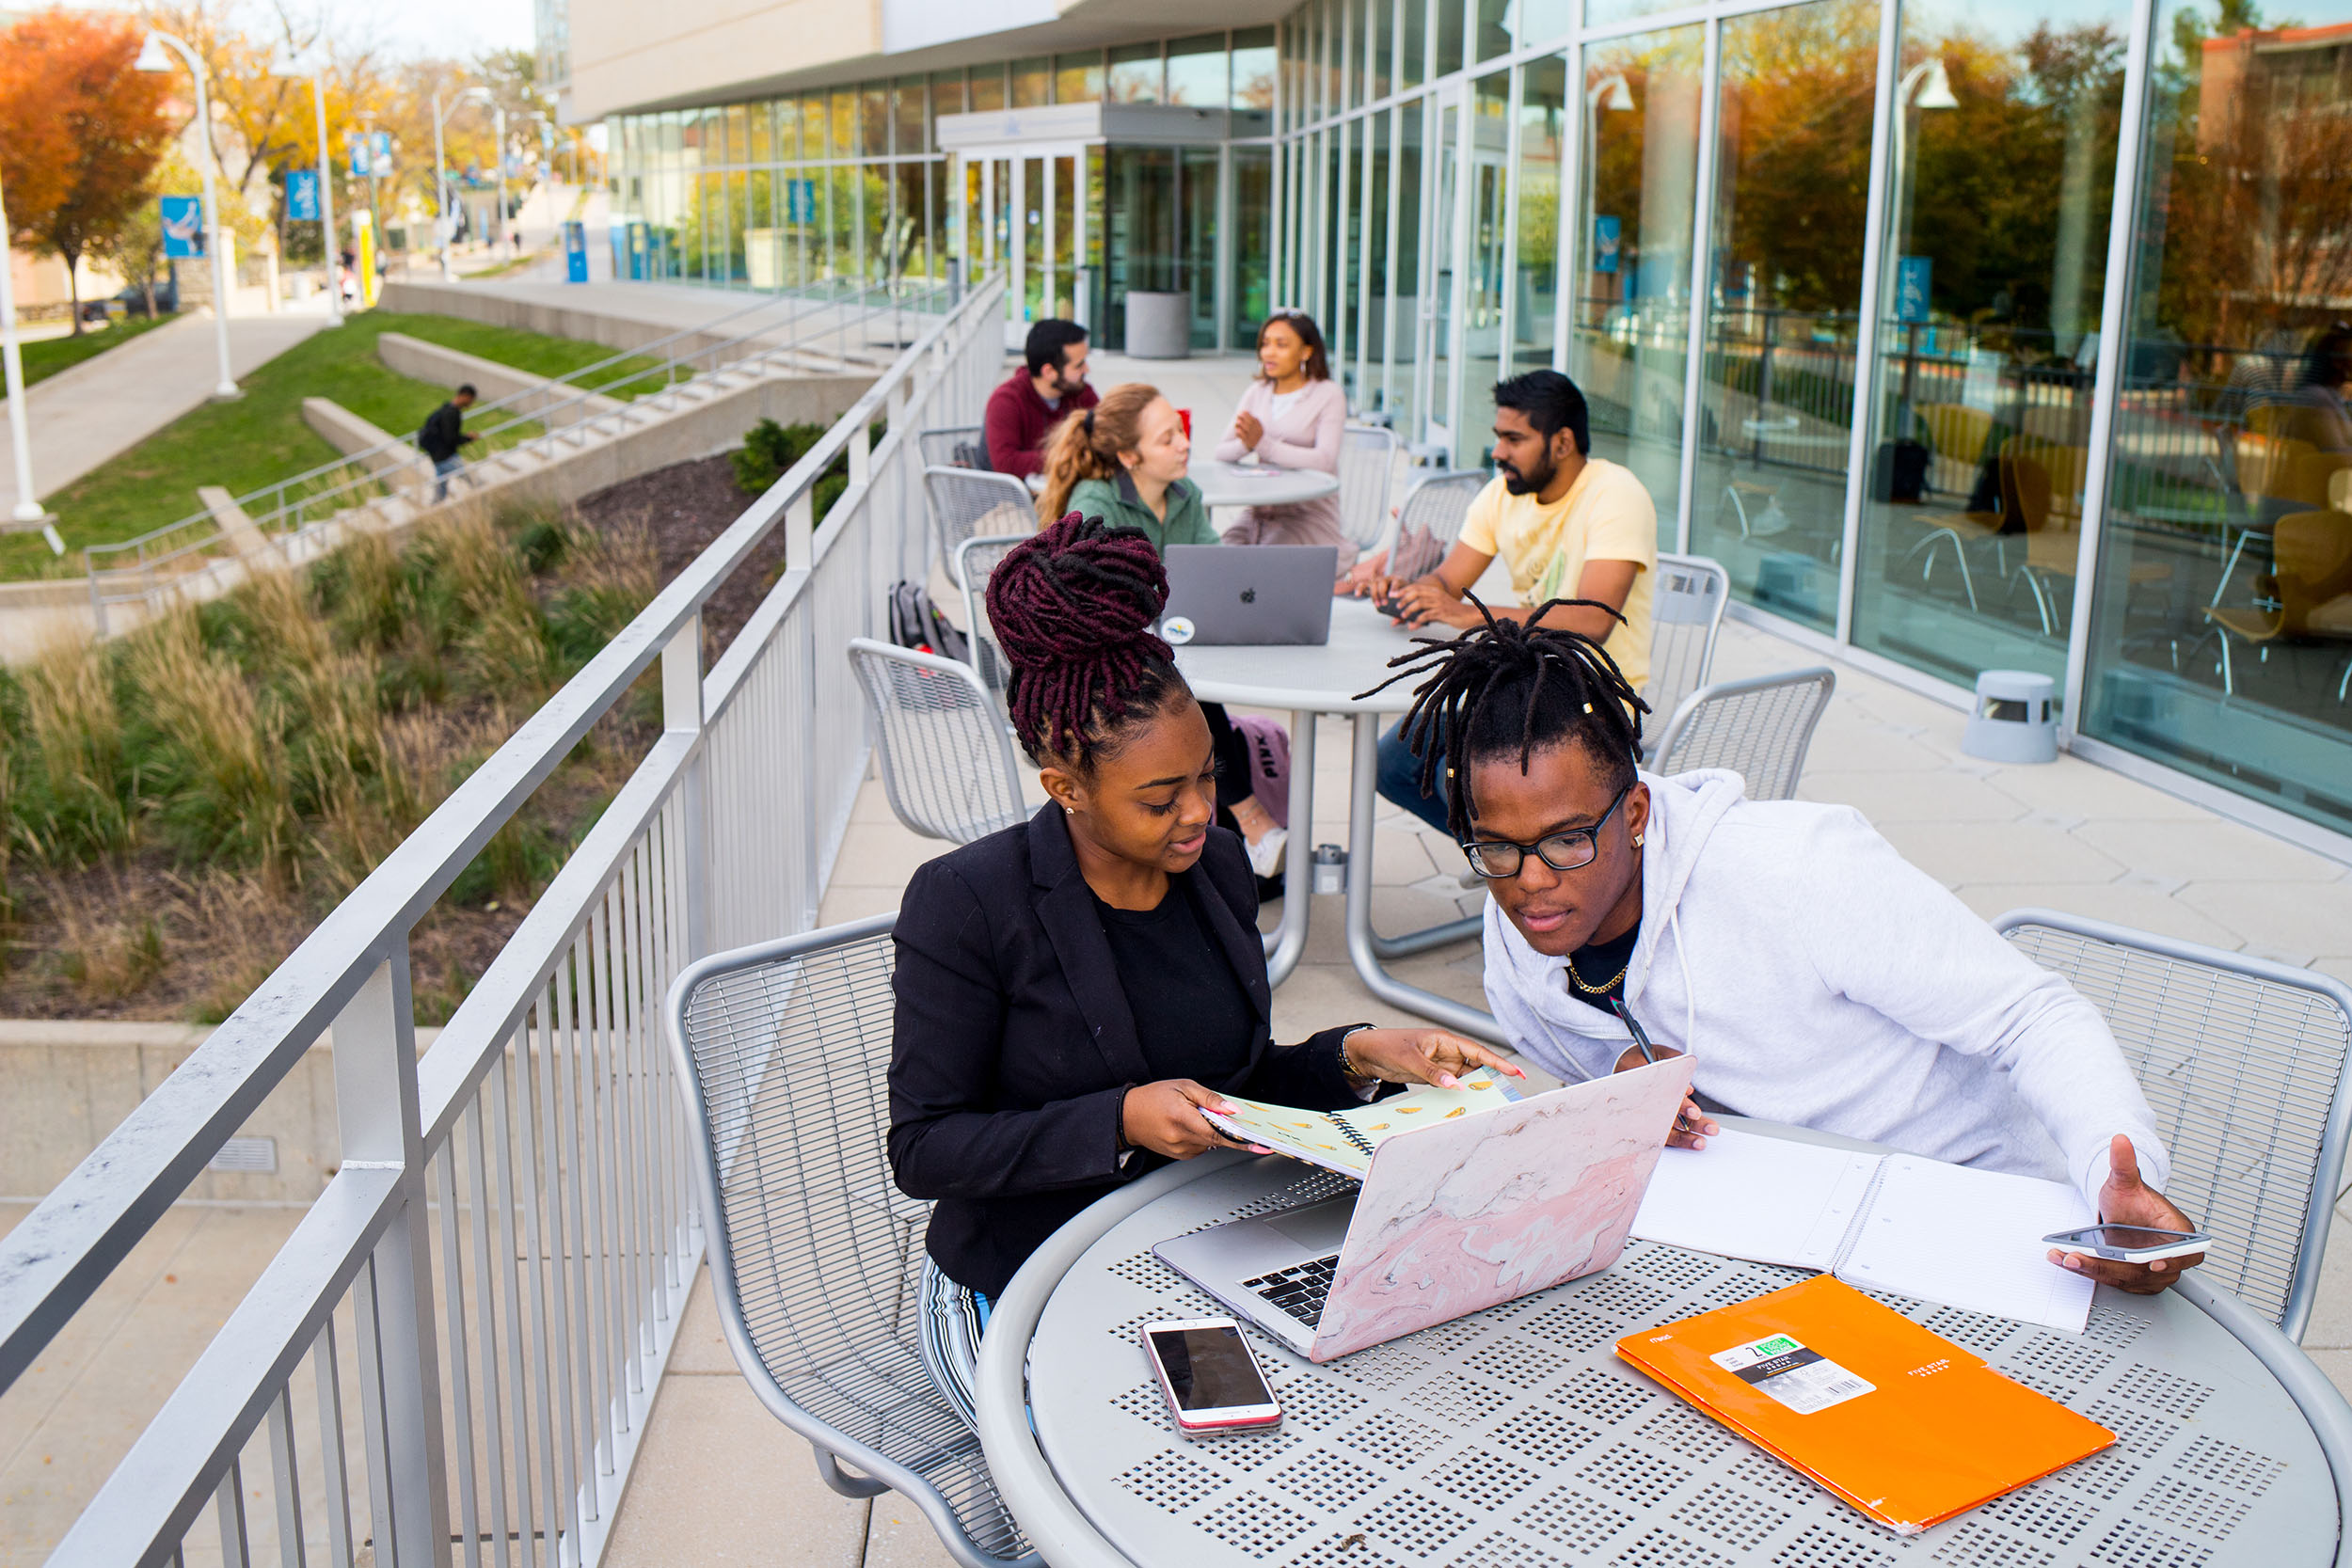 students looking at computer on patio